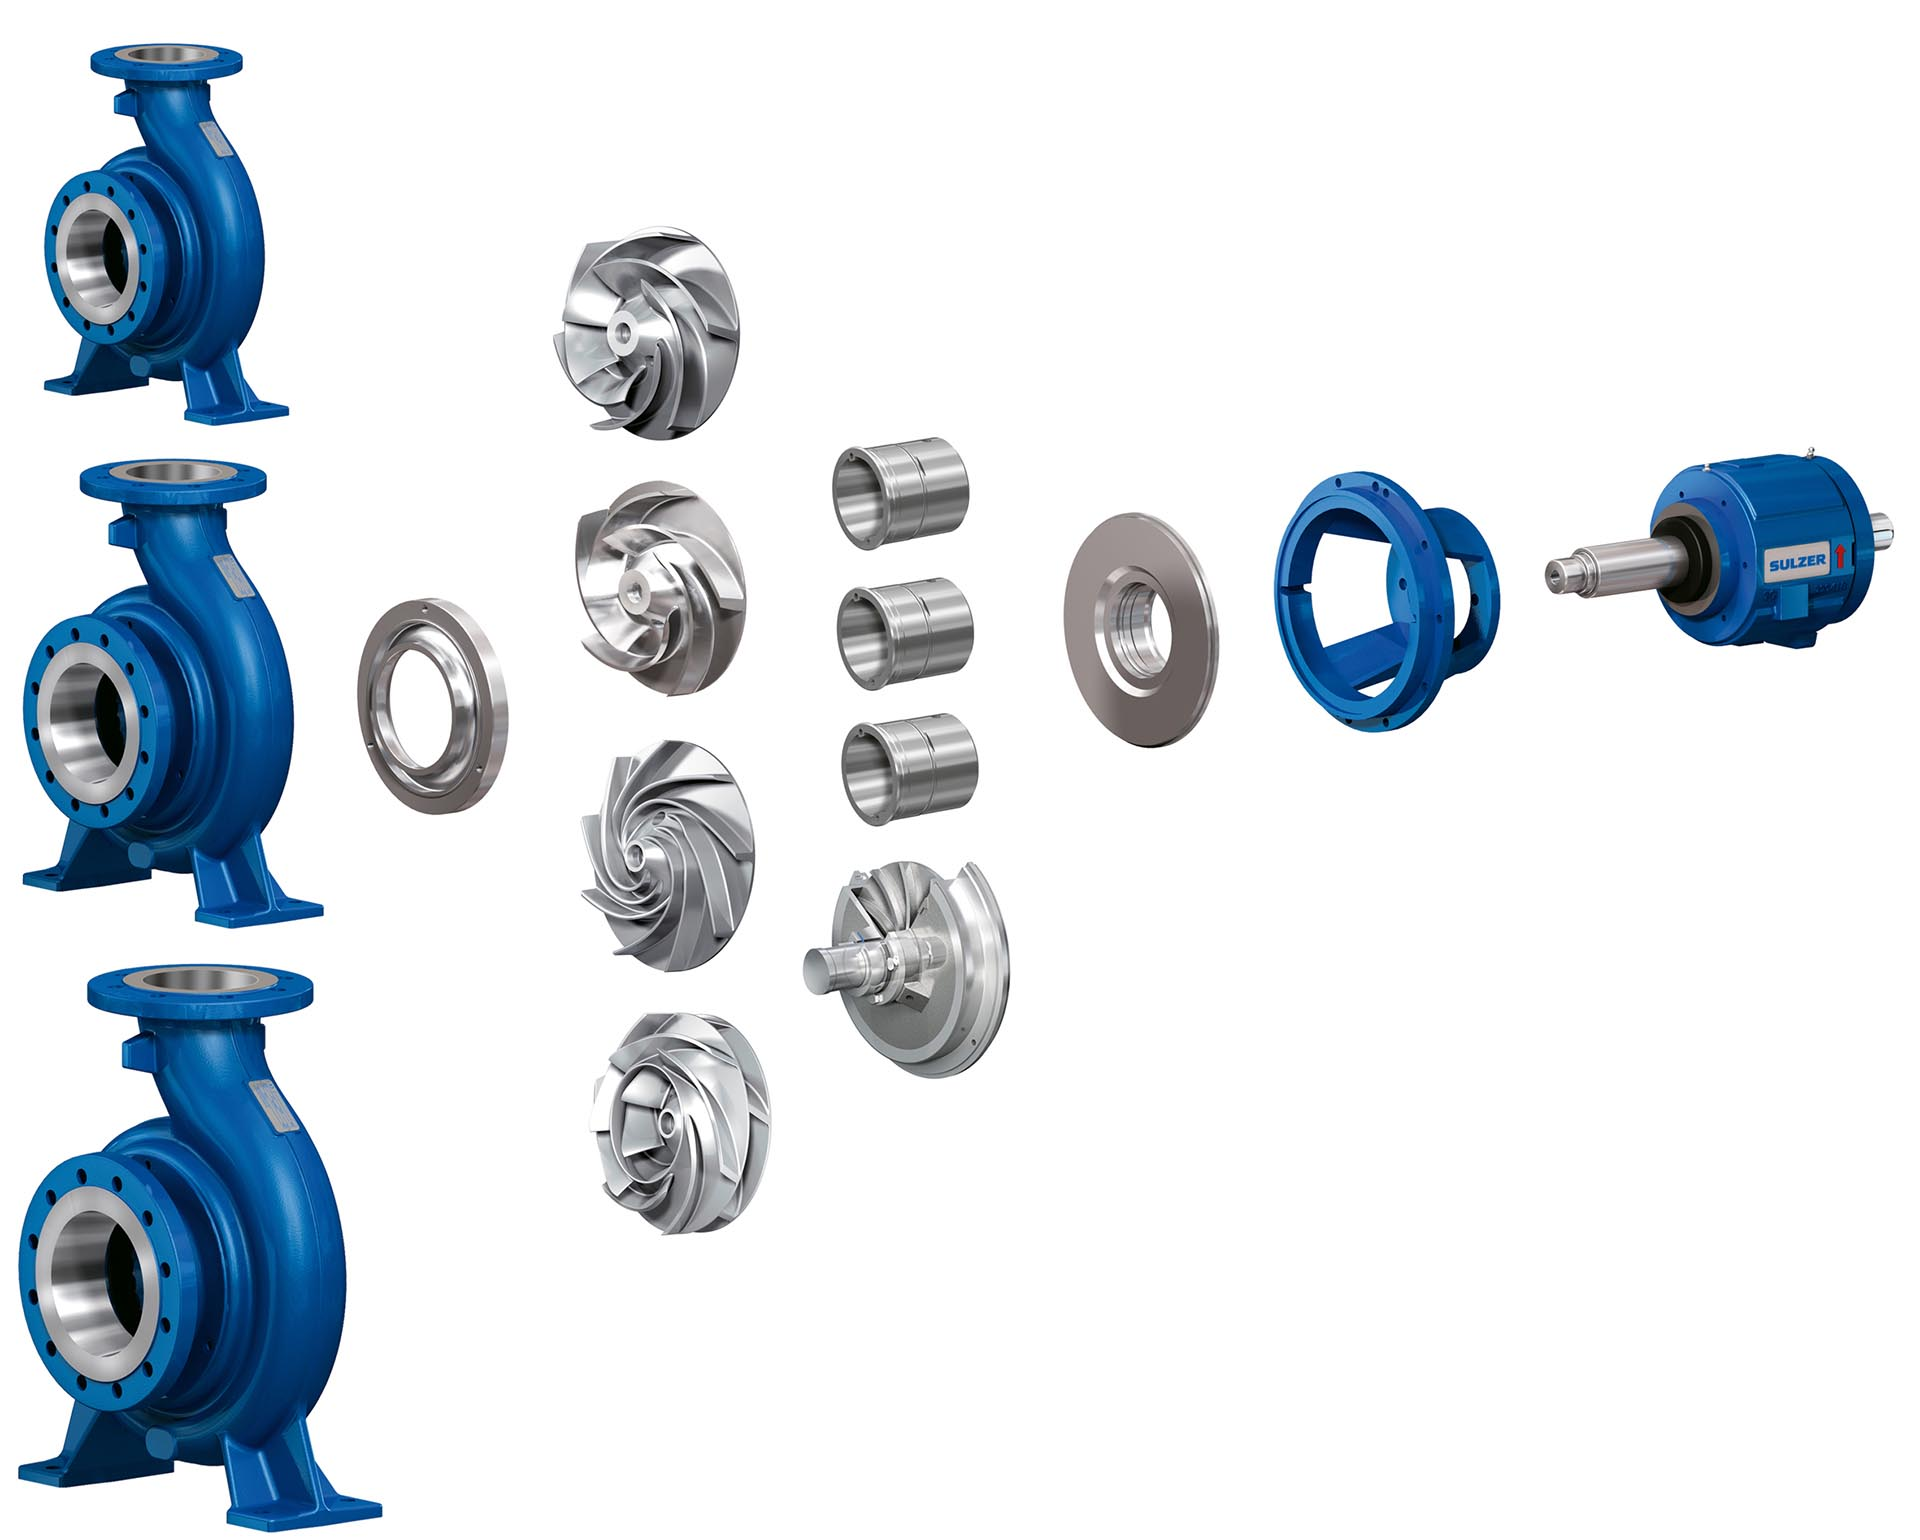 The modular design of BE end suction single stage pump minimizes spare part inventory costs